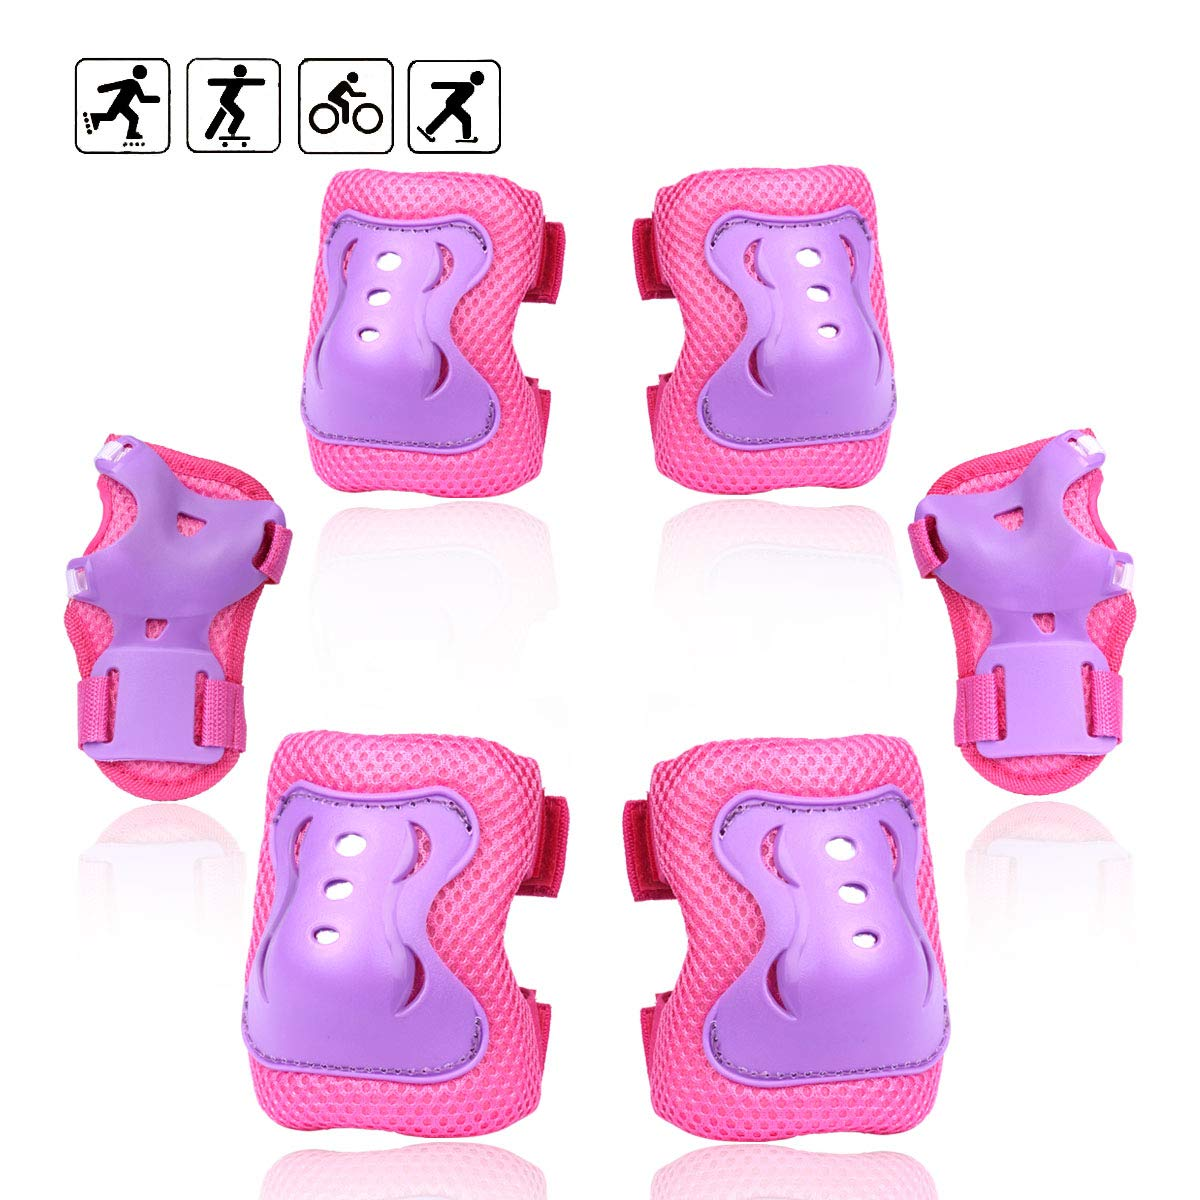 eNilecor Kid\'s Inline Skating Roller Blading Wrist Elbow Knee Pads Blades Guard Gift for Children\'s Day, Christmas Pack of 6 (Purple/Pink, S)